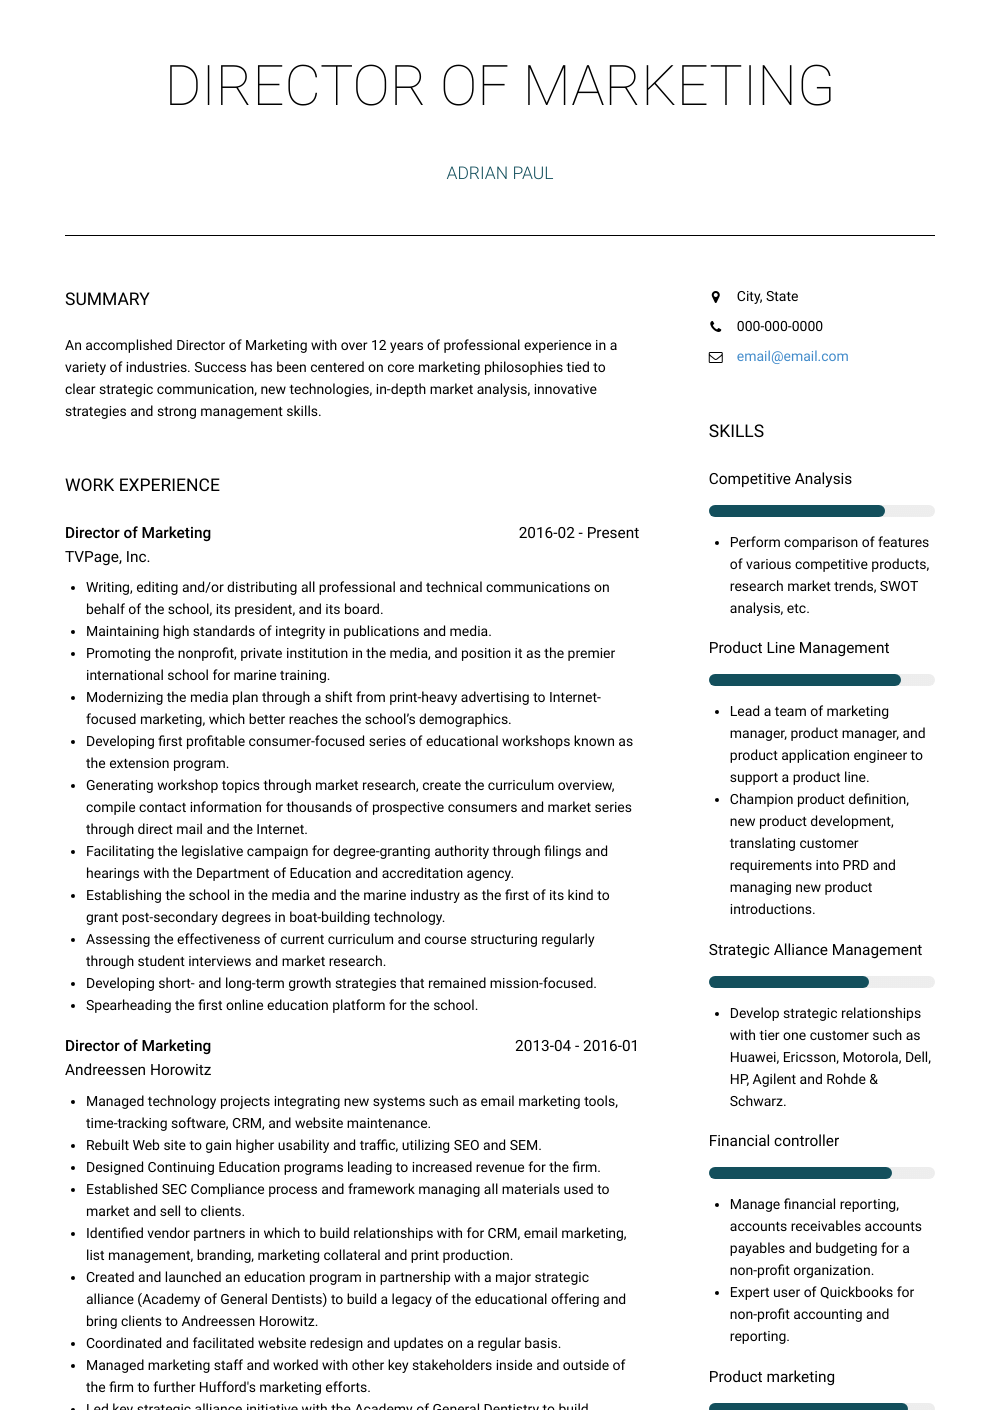 Director Of Marketing - Resume Samples and Templates | VisualCV